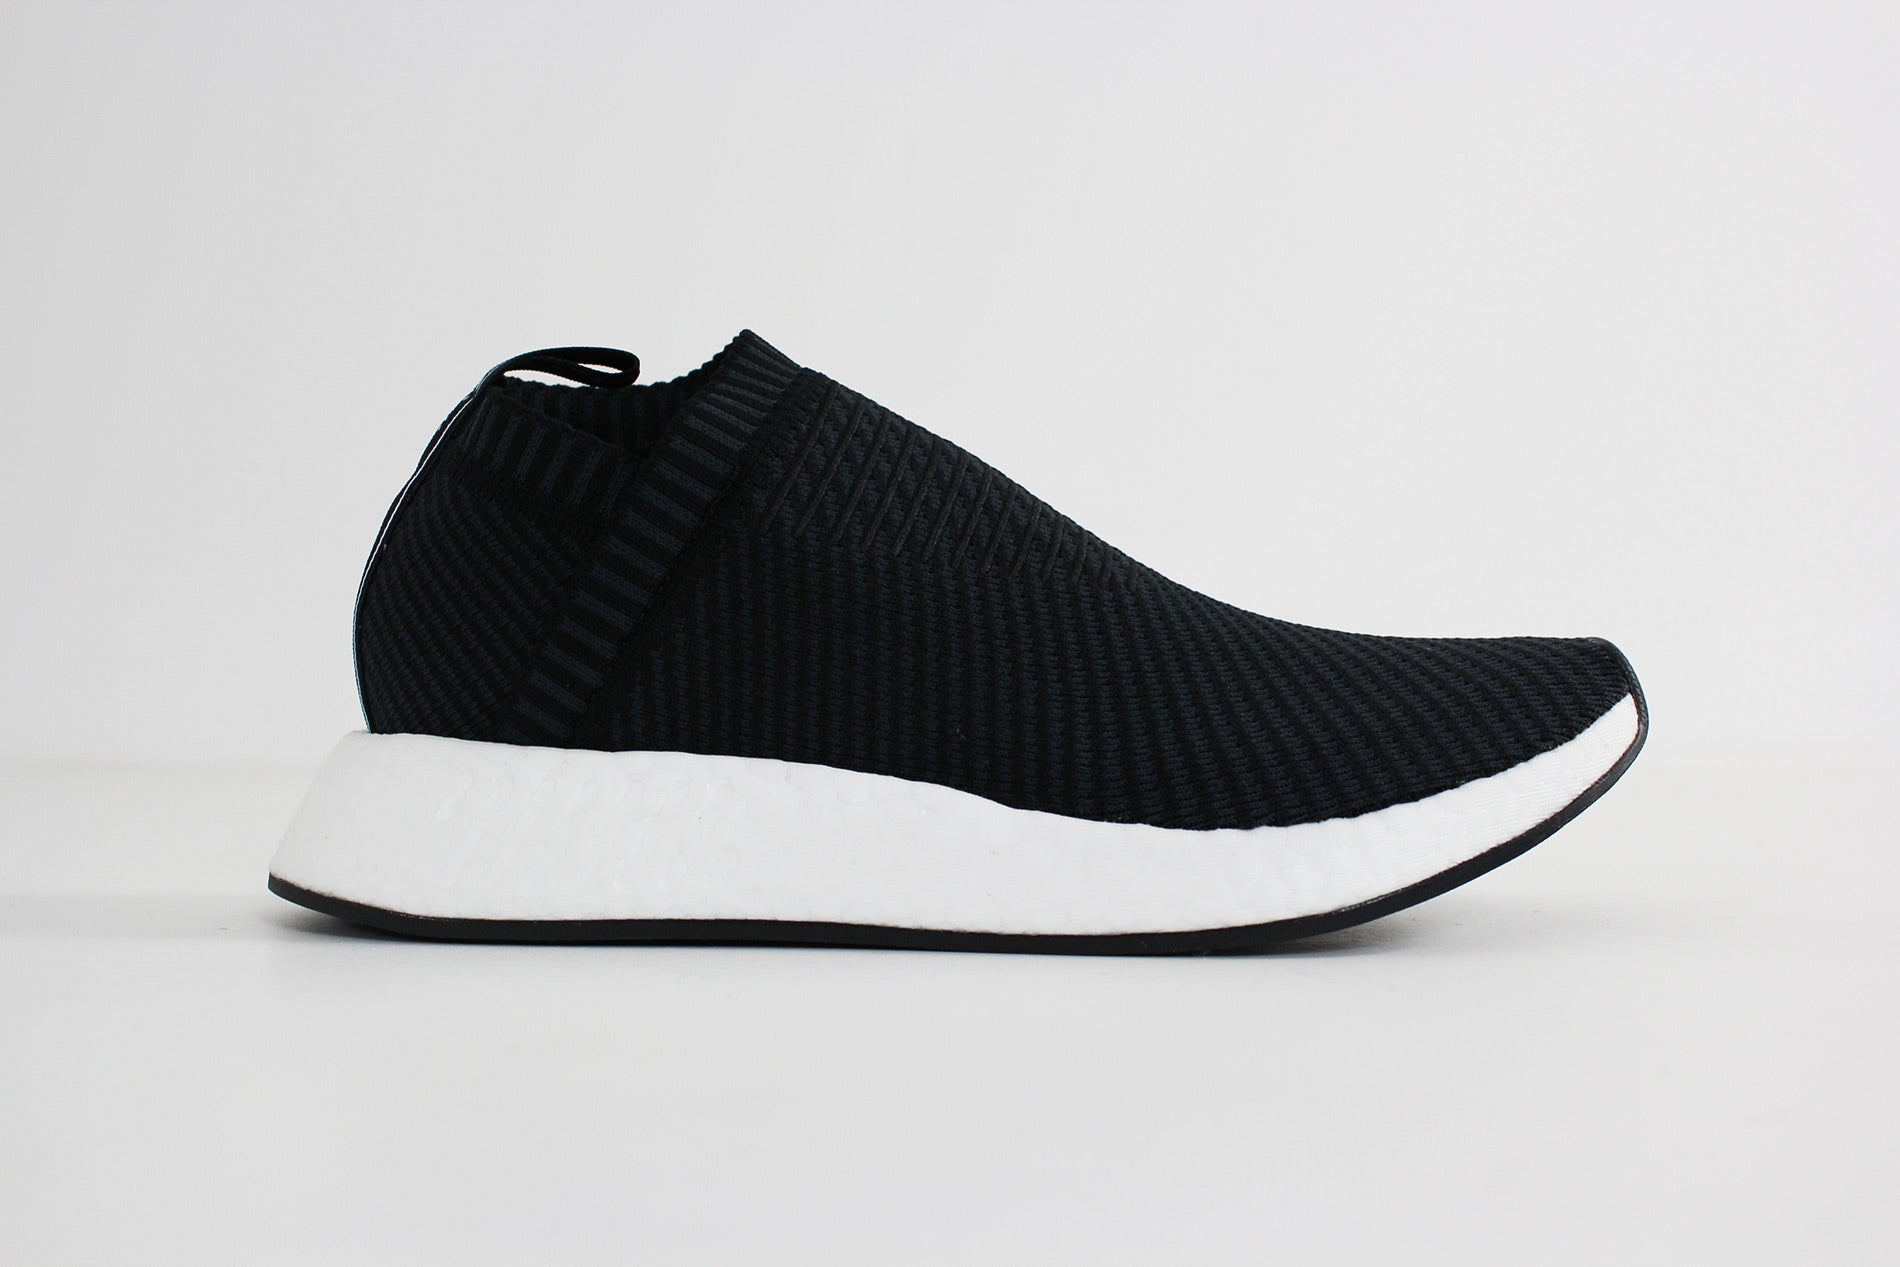 Adidas -  NMD CS2 Primkeknit (Core Black/ Carbon/ Red) CQ2372